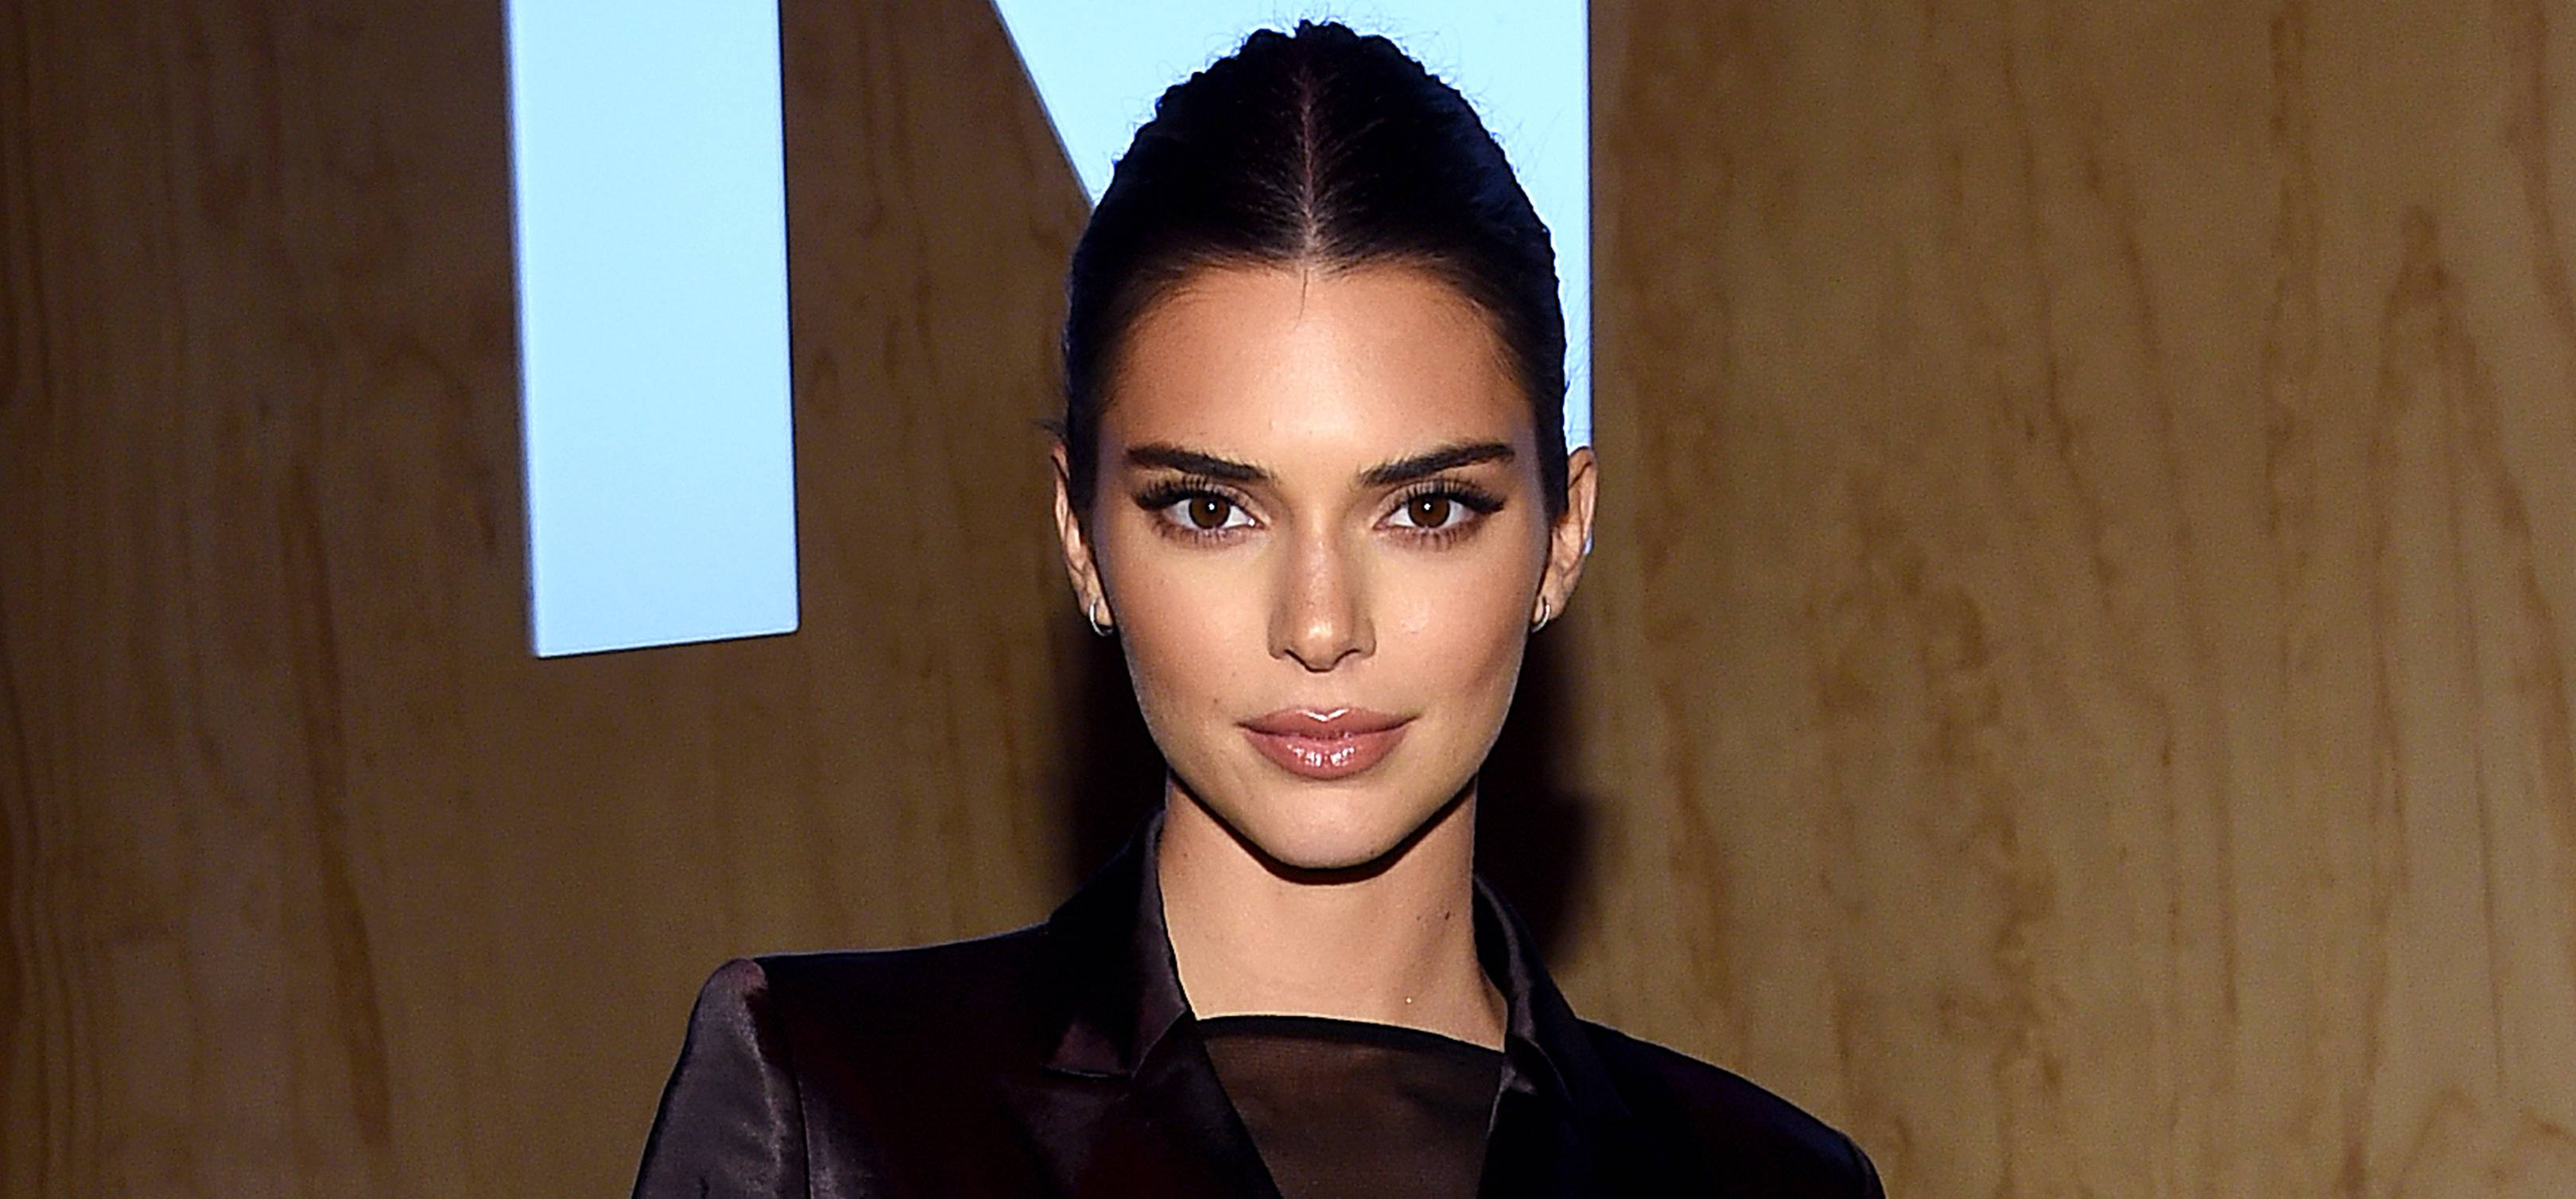 Kendall Jenner S Hair And Makeup Her Best Beauty Looks Glamour Uk